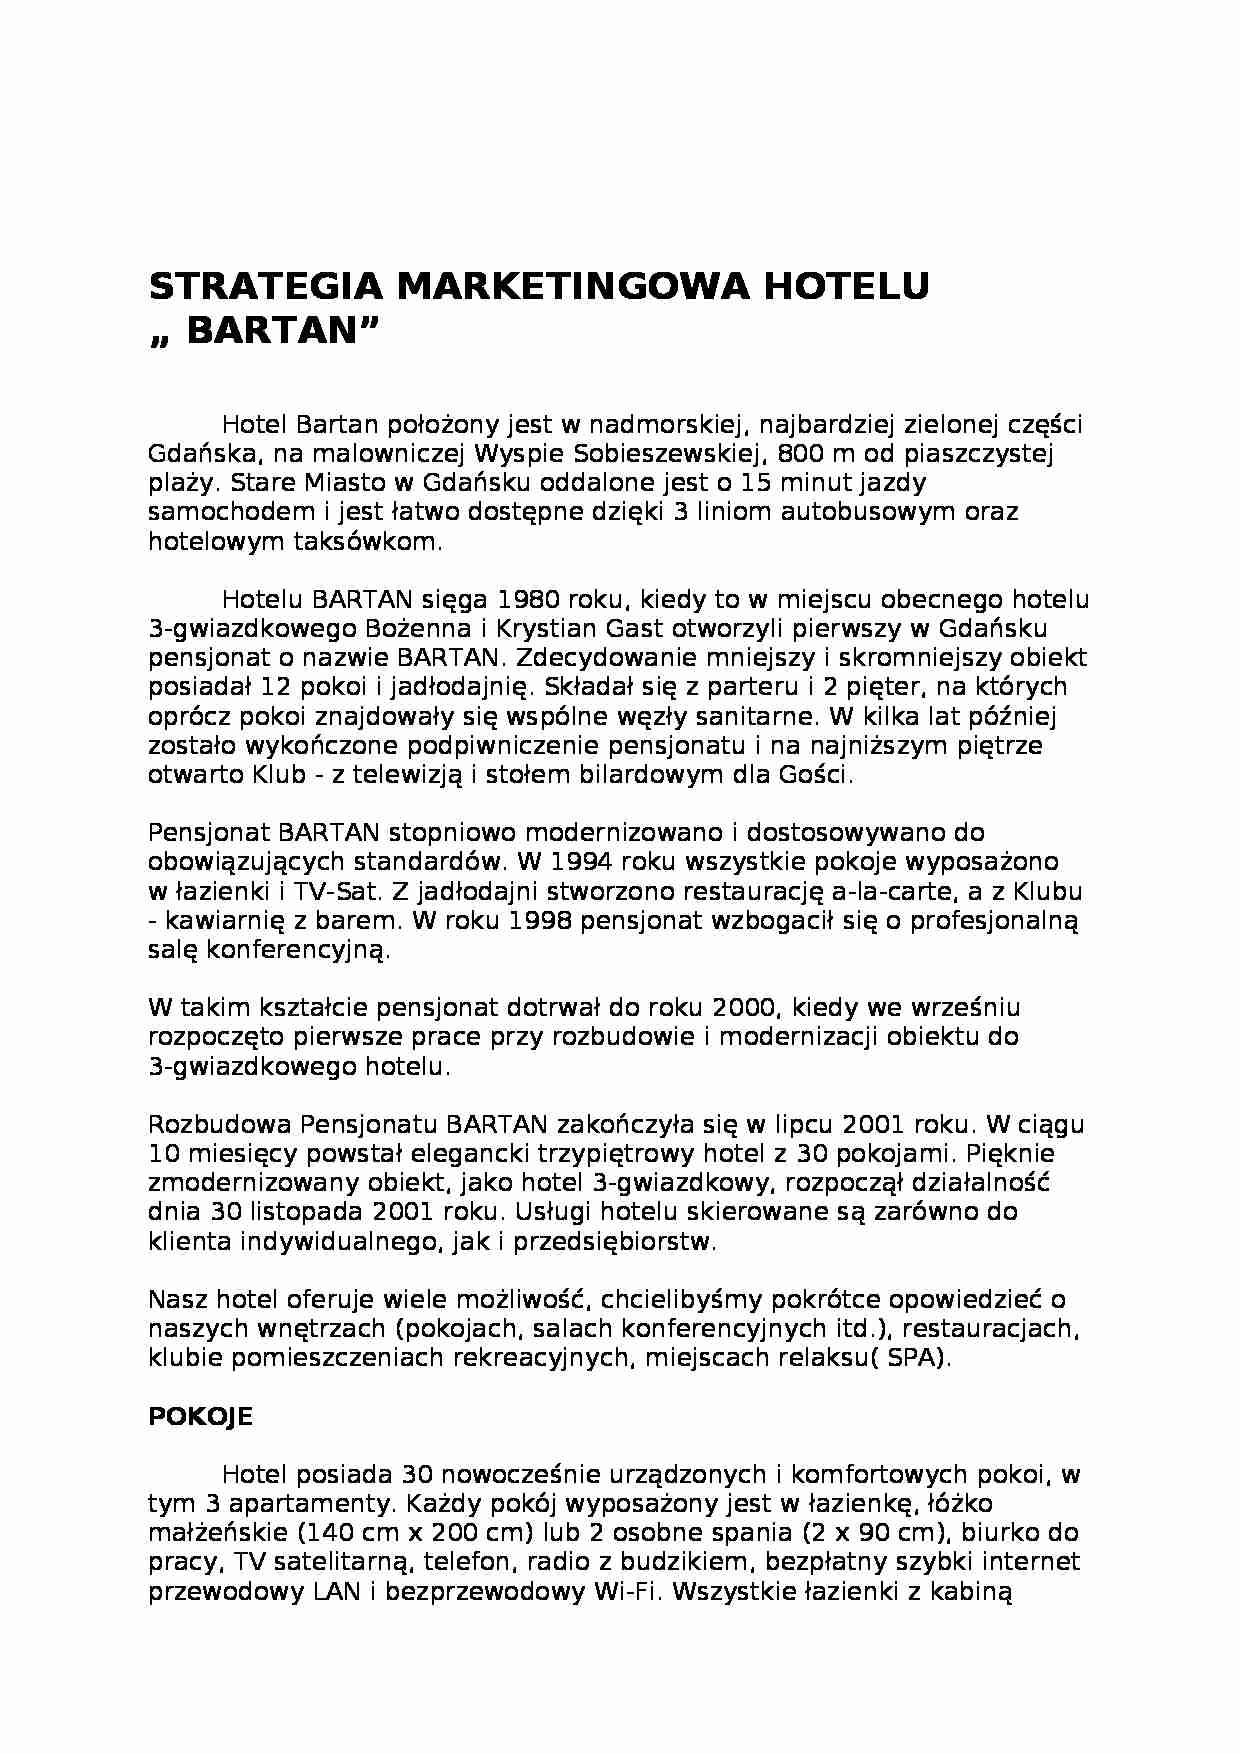 Strategie marketingowe hotelu